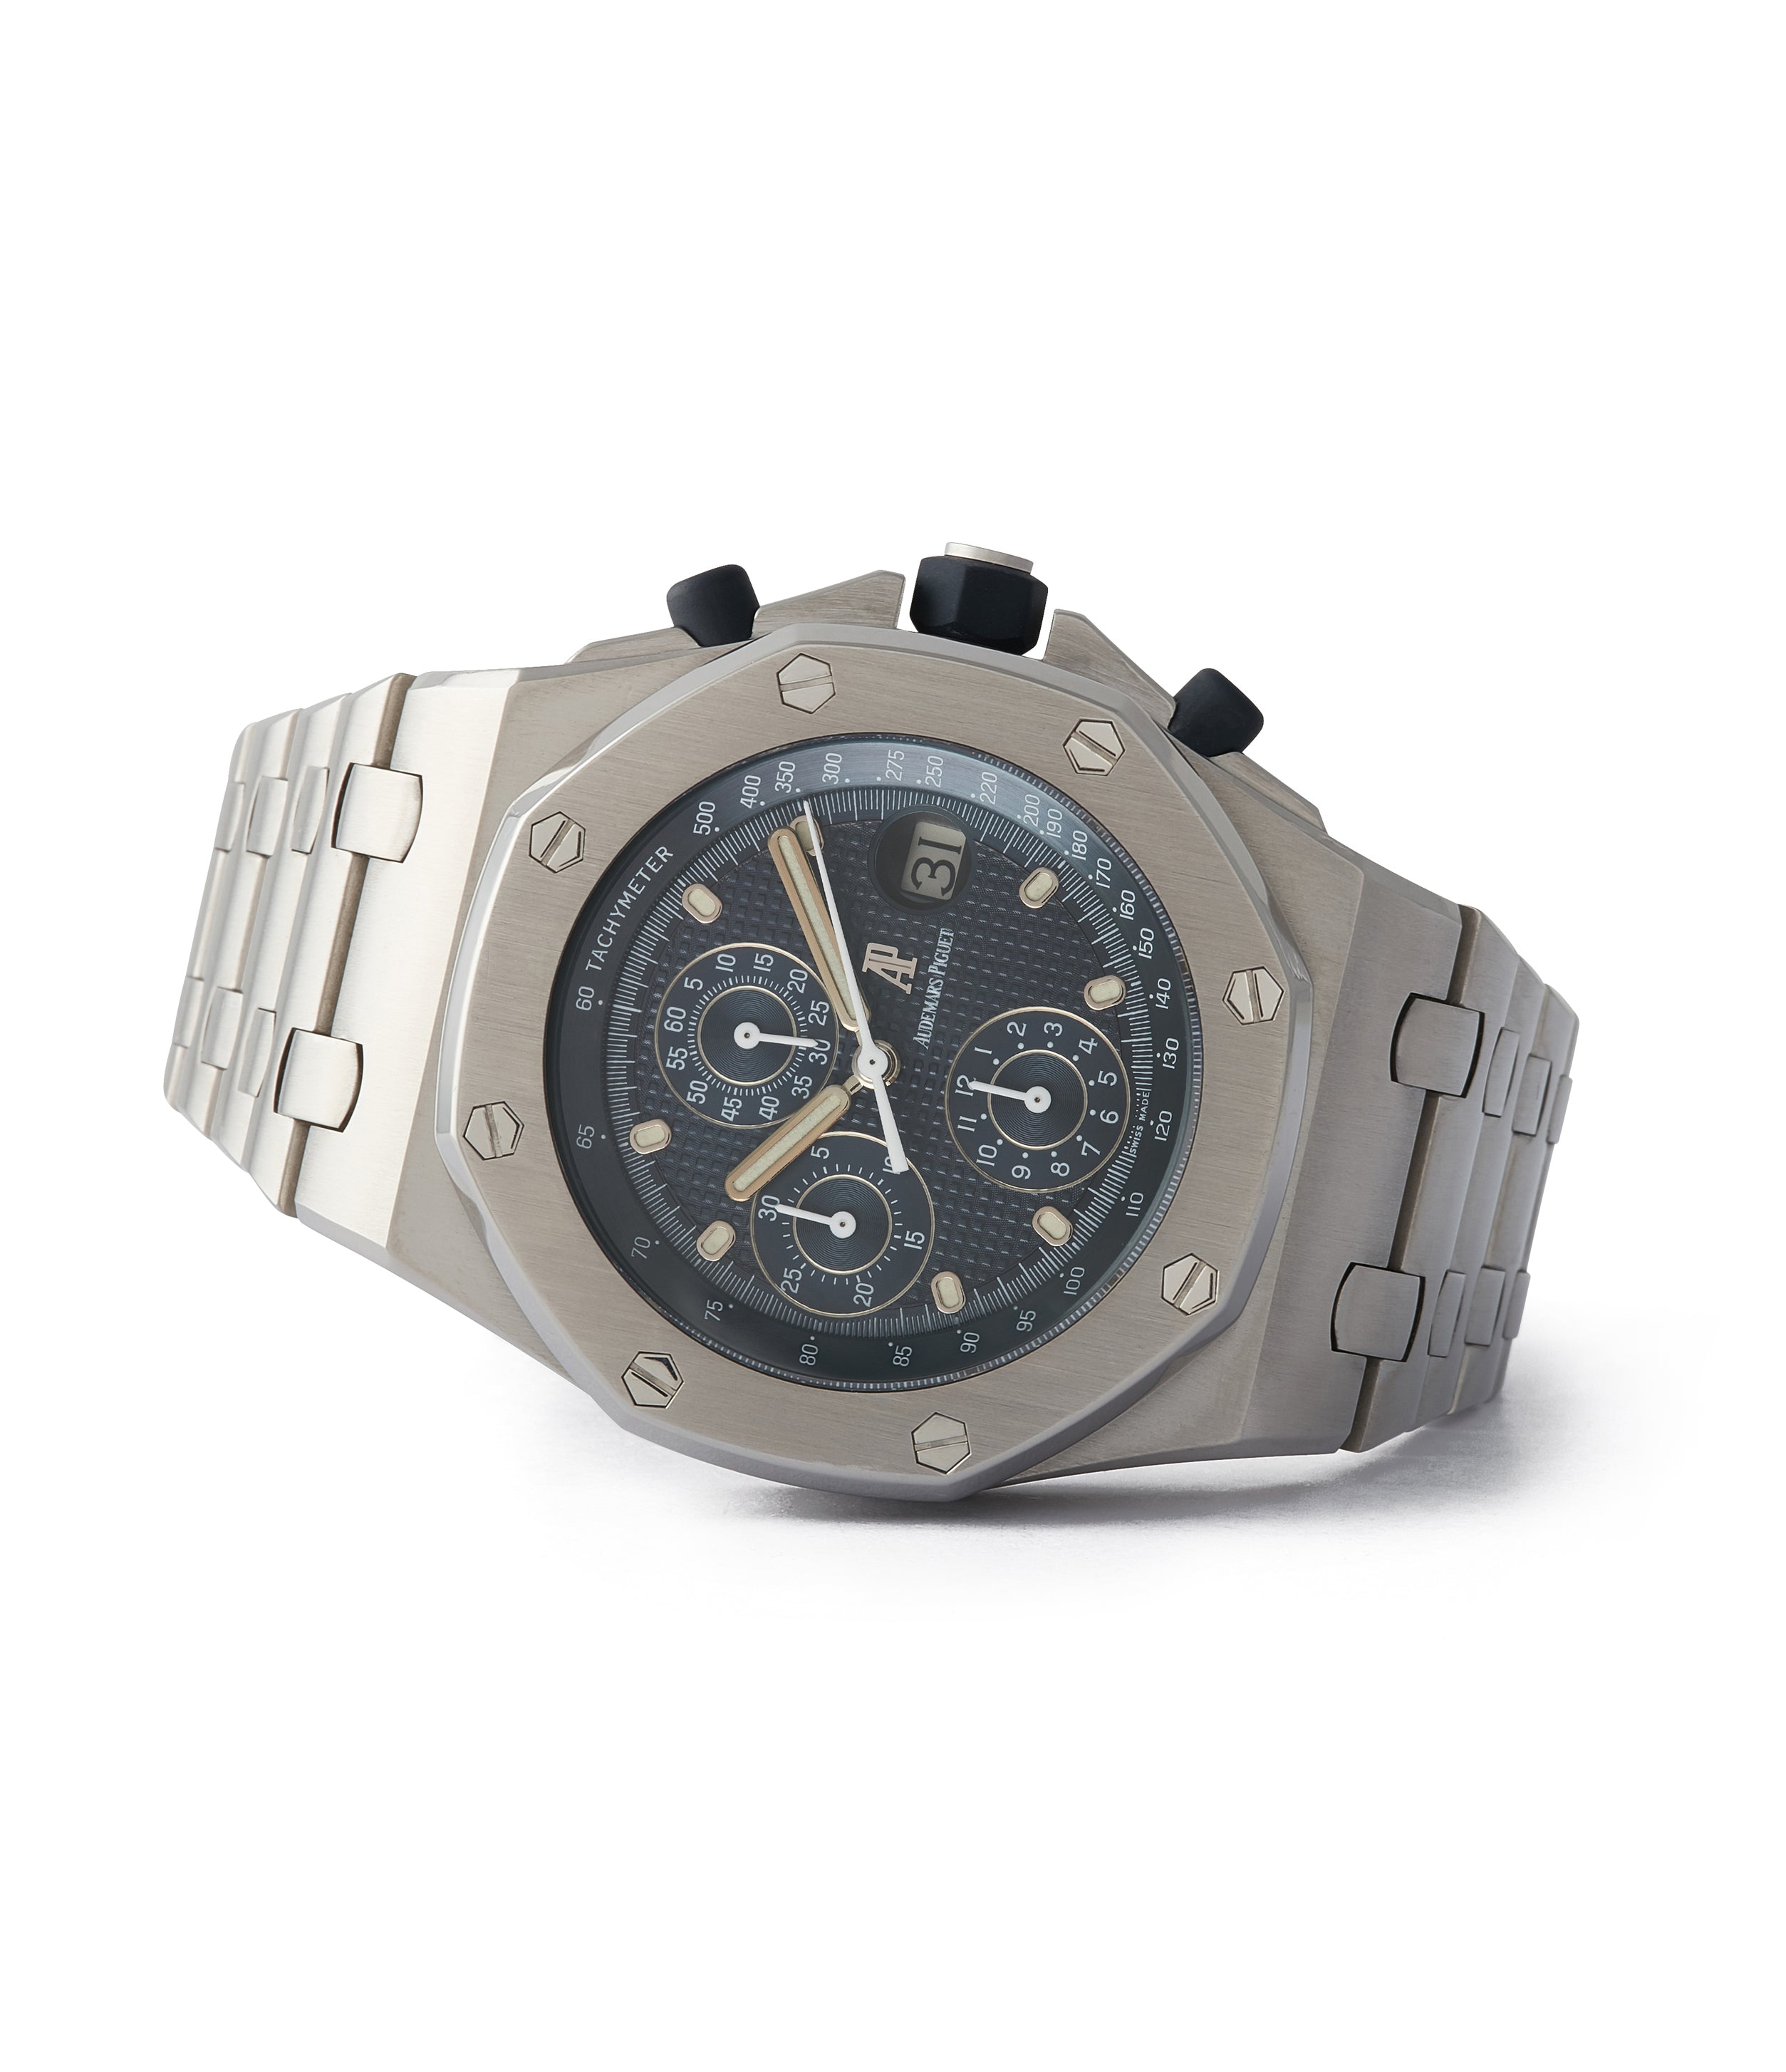 consign Audemars Piguet Royal Oak Offshore 'The Beast' 25721 steel vintage chronograph watch for sale online A Collected Man London UK specialist of rare watches